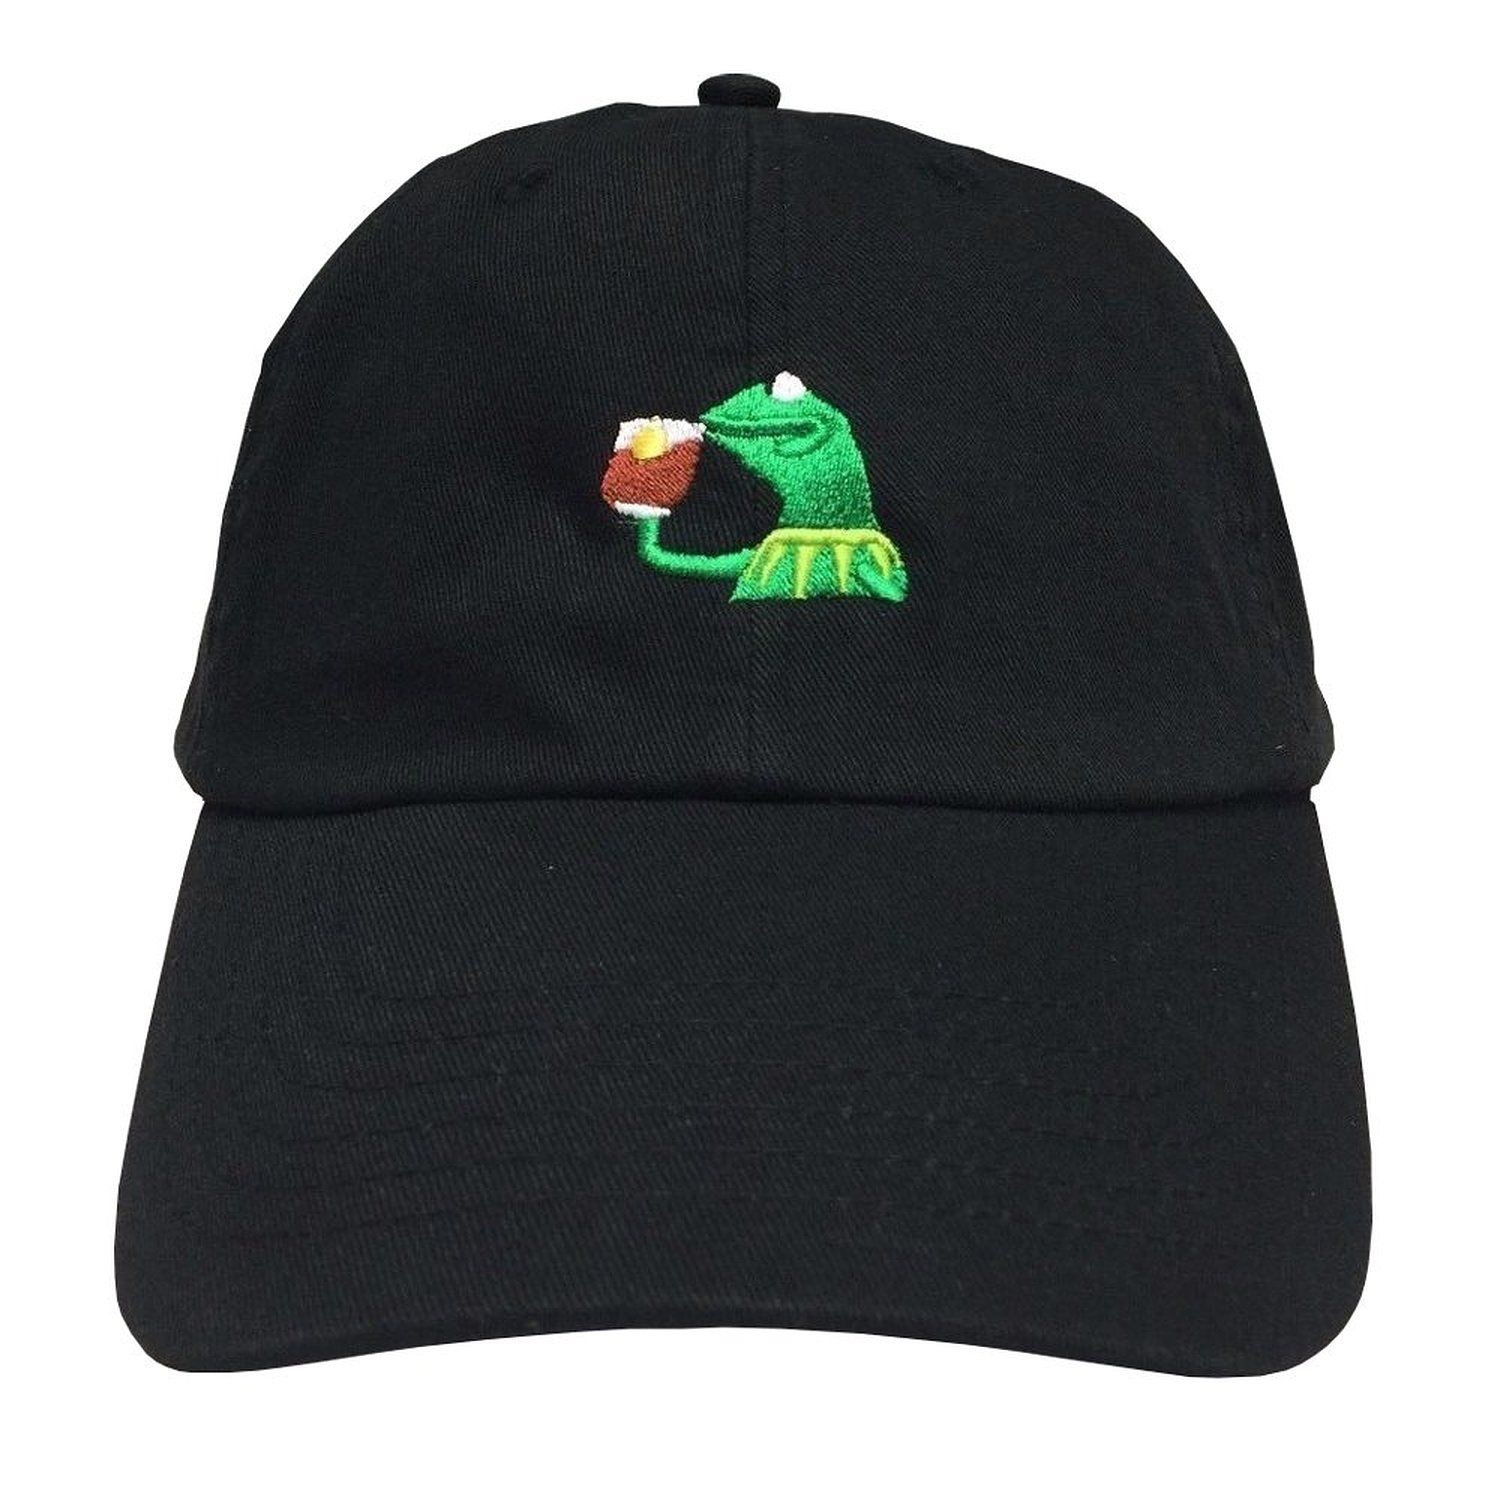 7f5981a14ef1 Amazon.com  KERMIT TEA Hat StrapBack none of my business Emoji Frog James  meme Cap  Clothing